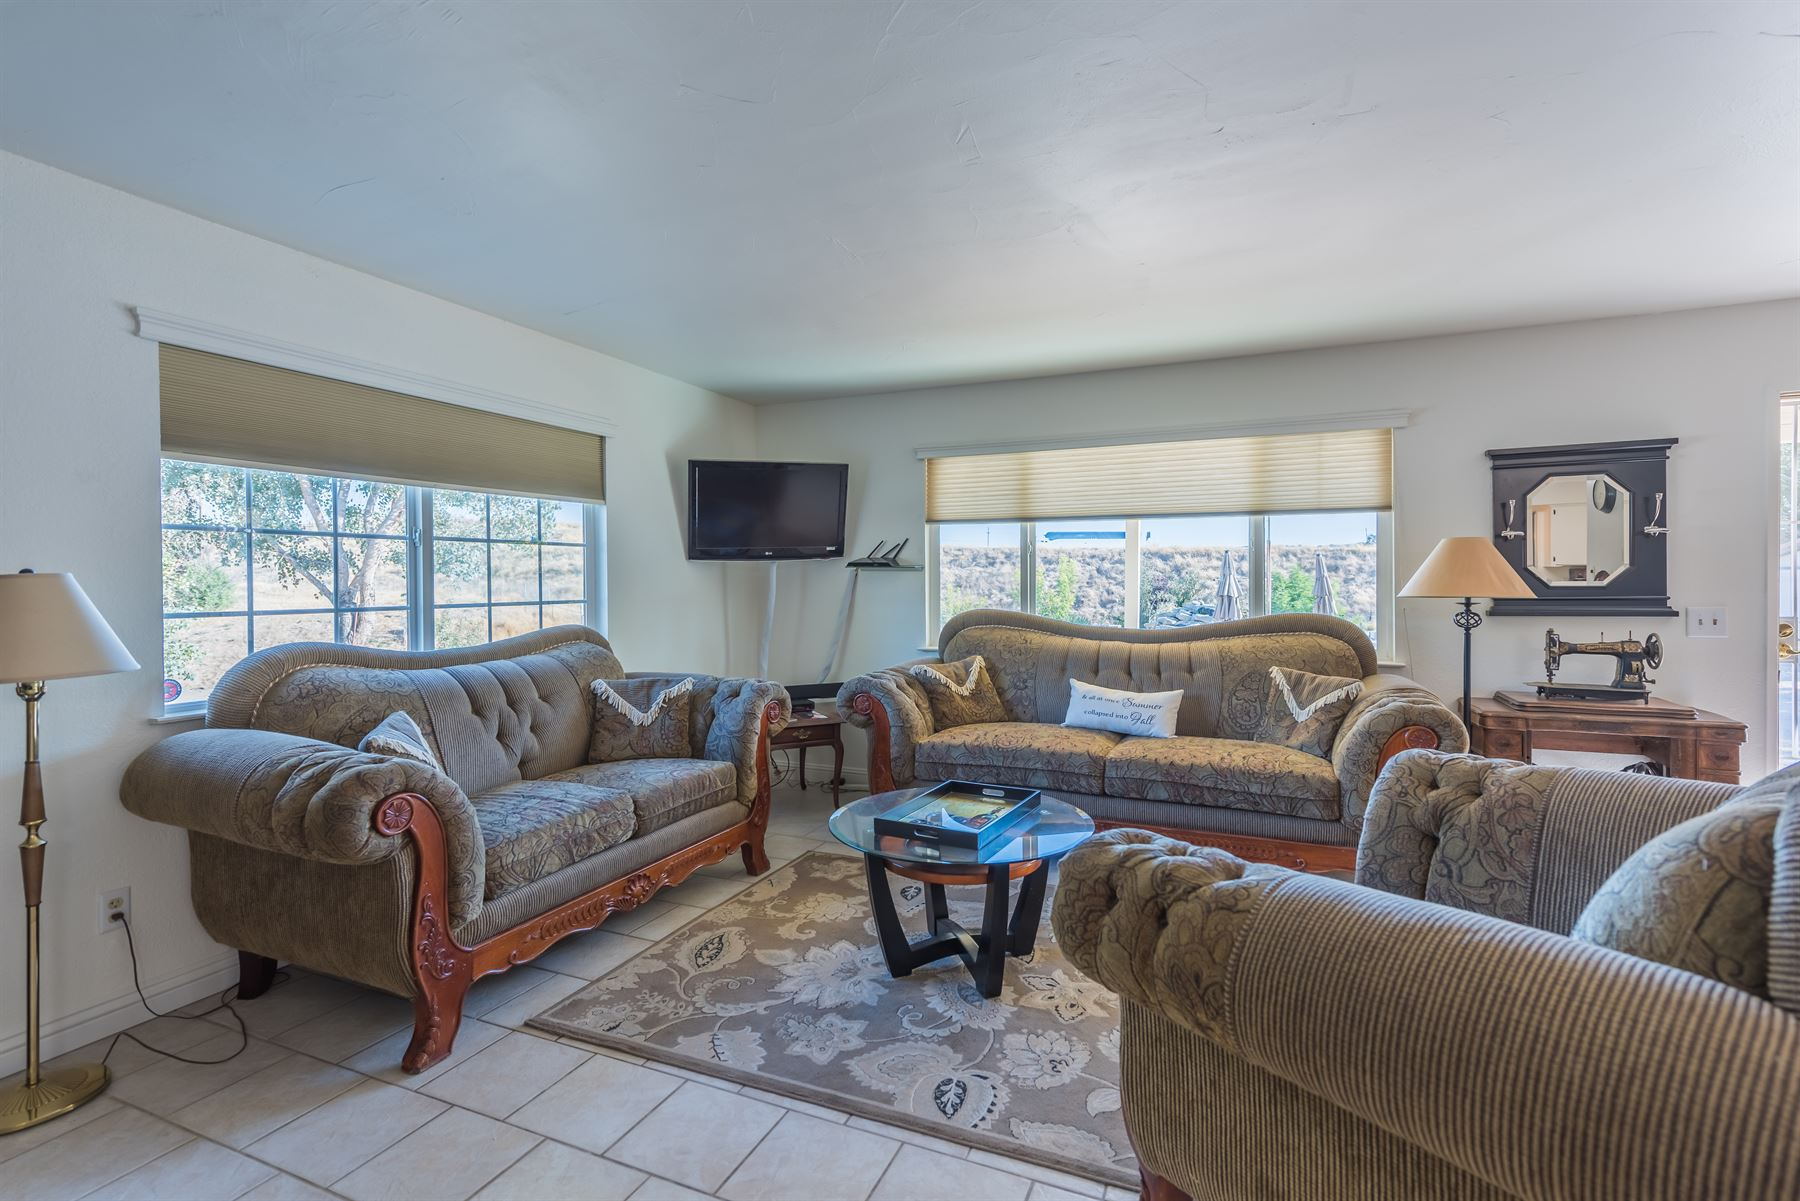 Oak Pass Ranch - Interior - Living room with two couches and one plush chair